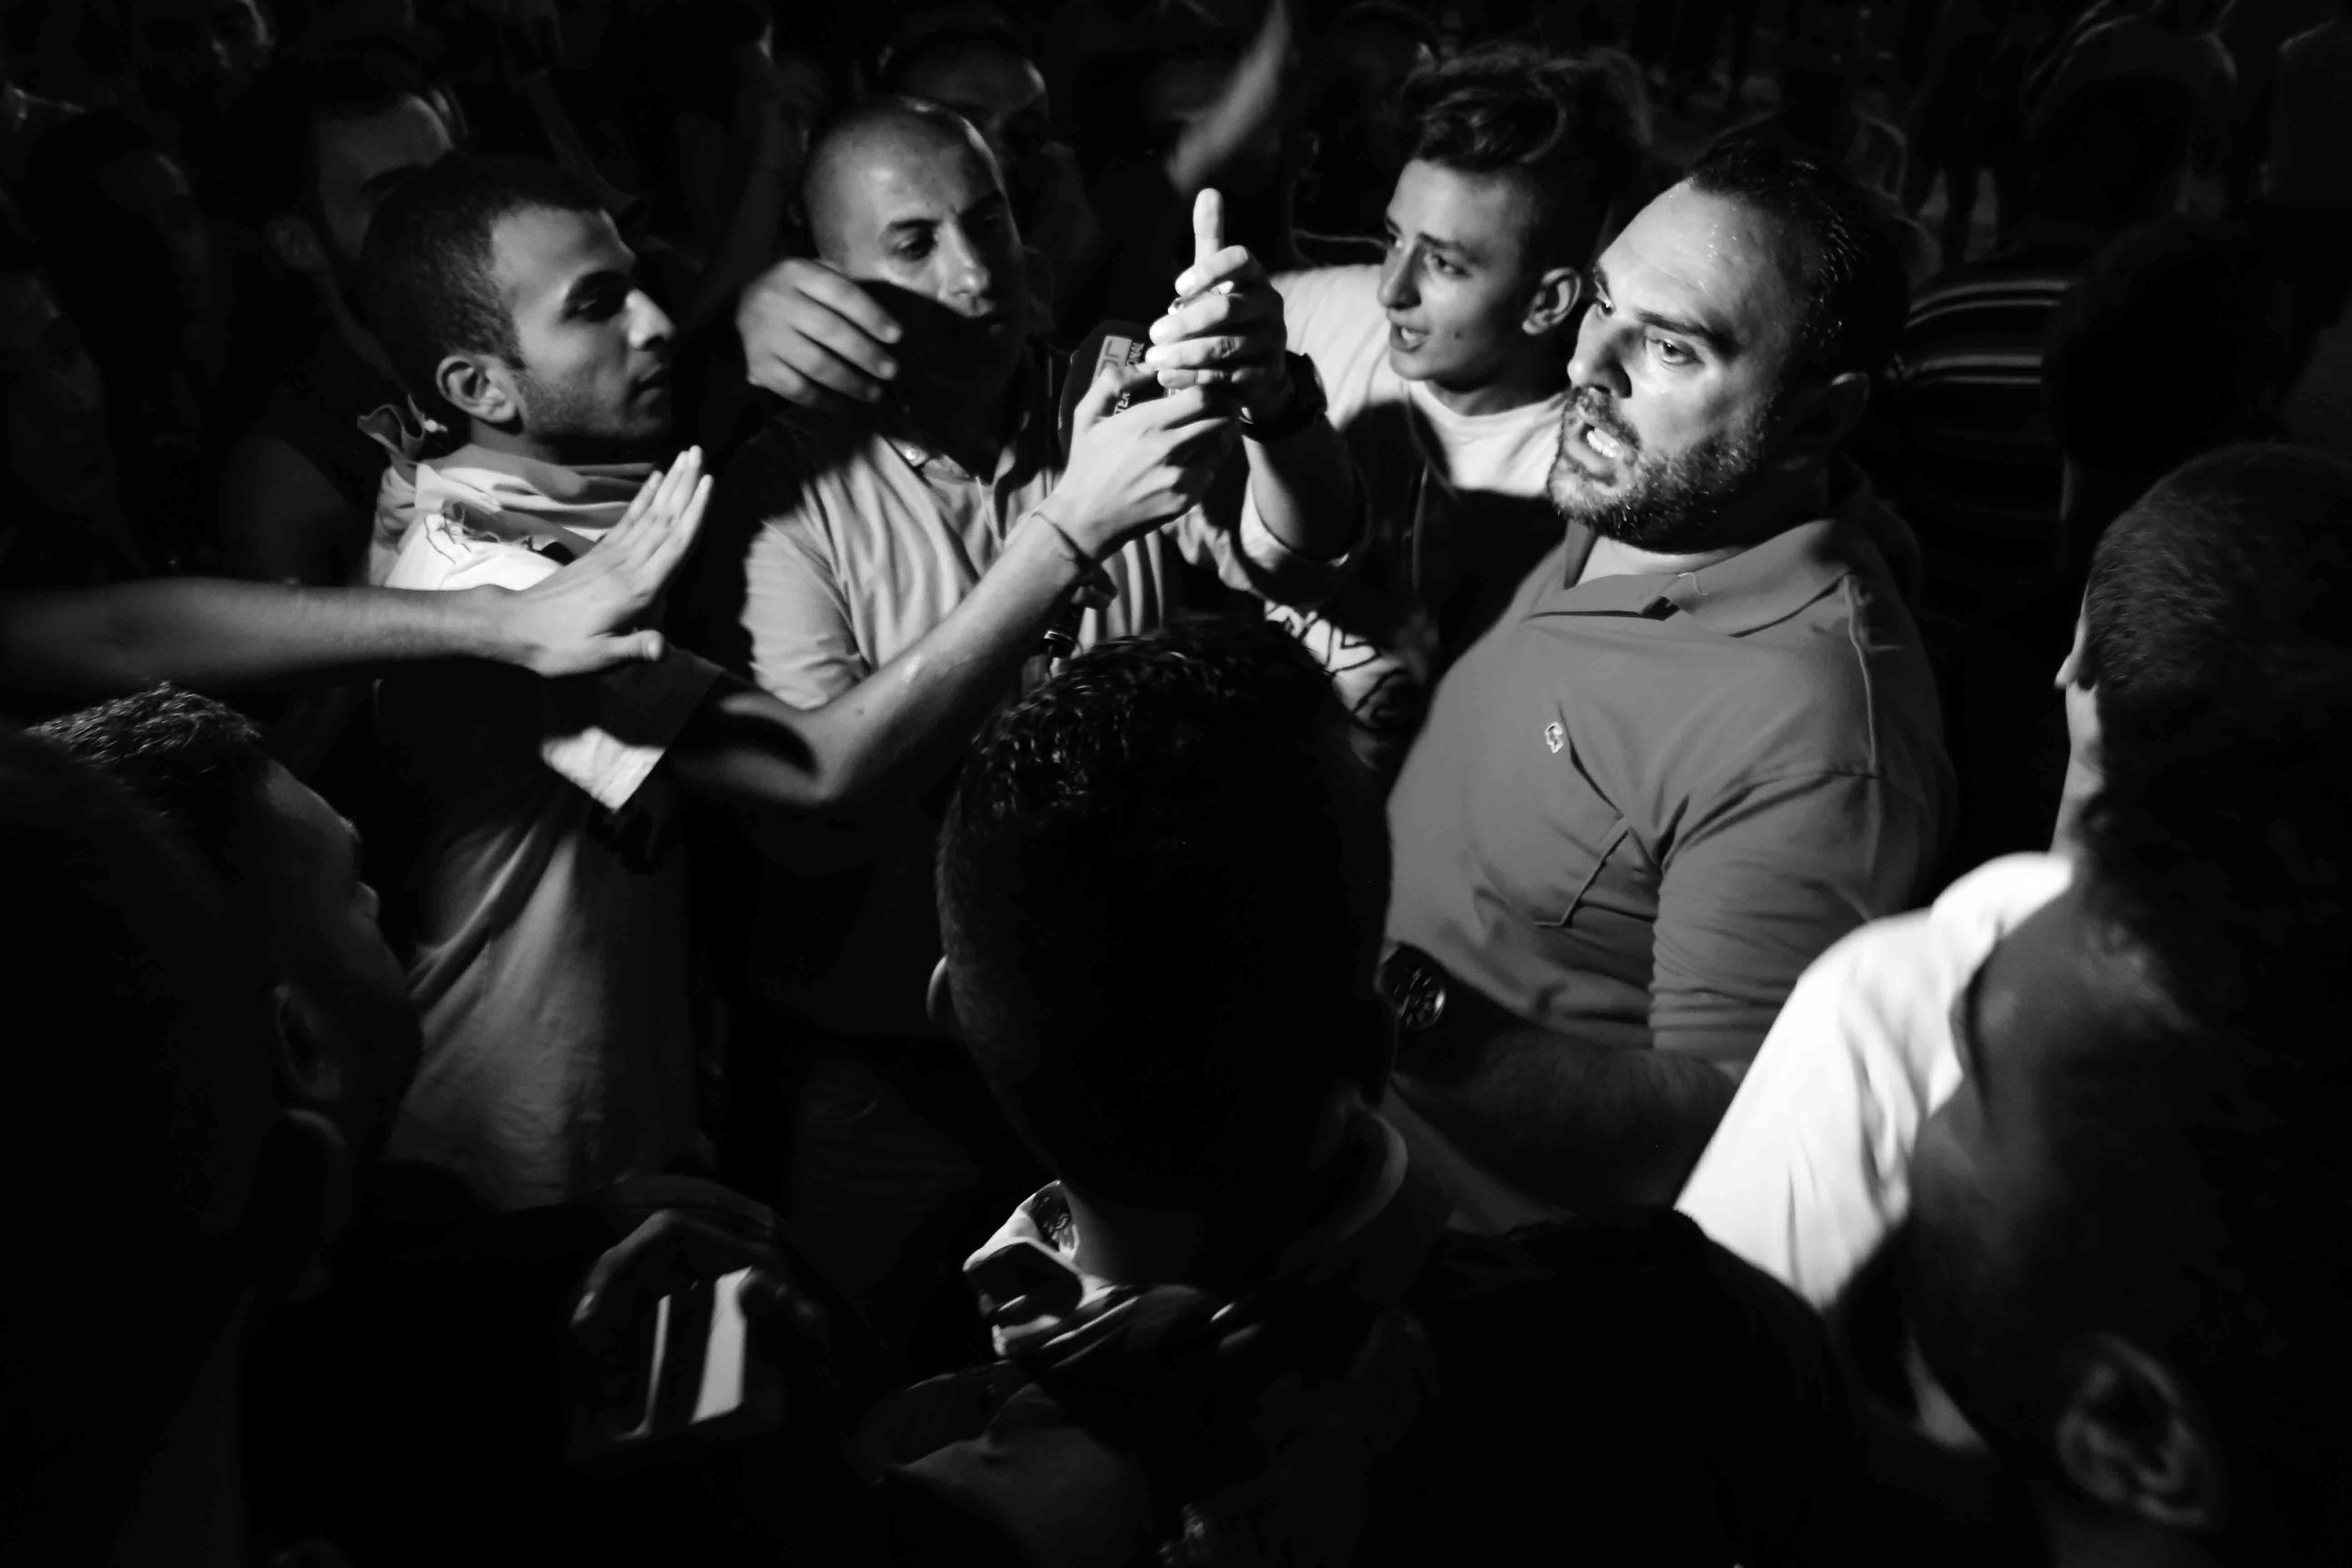 6--Sami-Ouchane-Protest-by-night-n°1-(Downtown,-Beirut,-Lebanon,-23_08_2015)